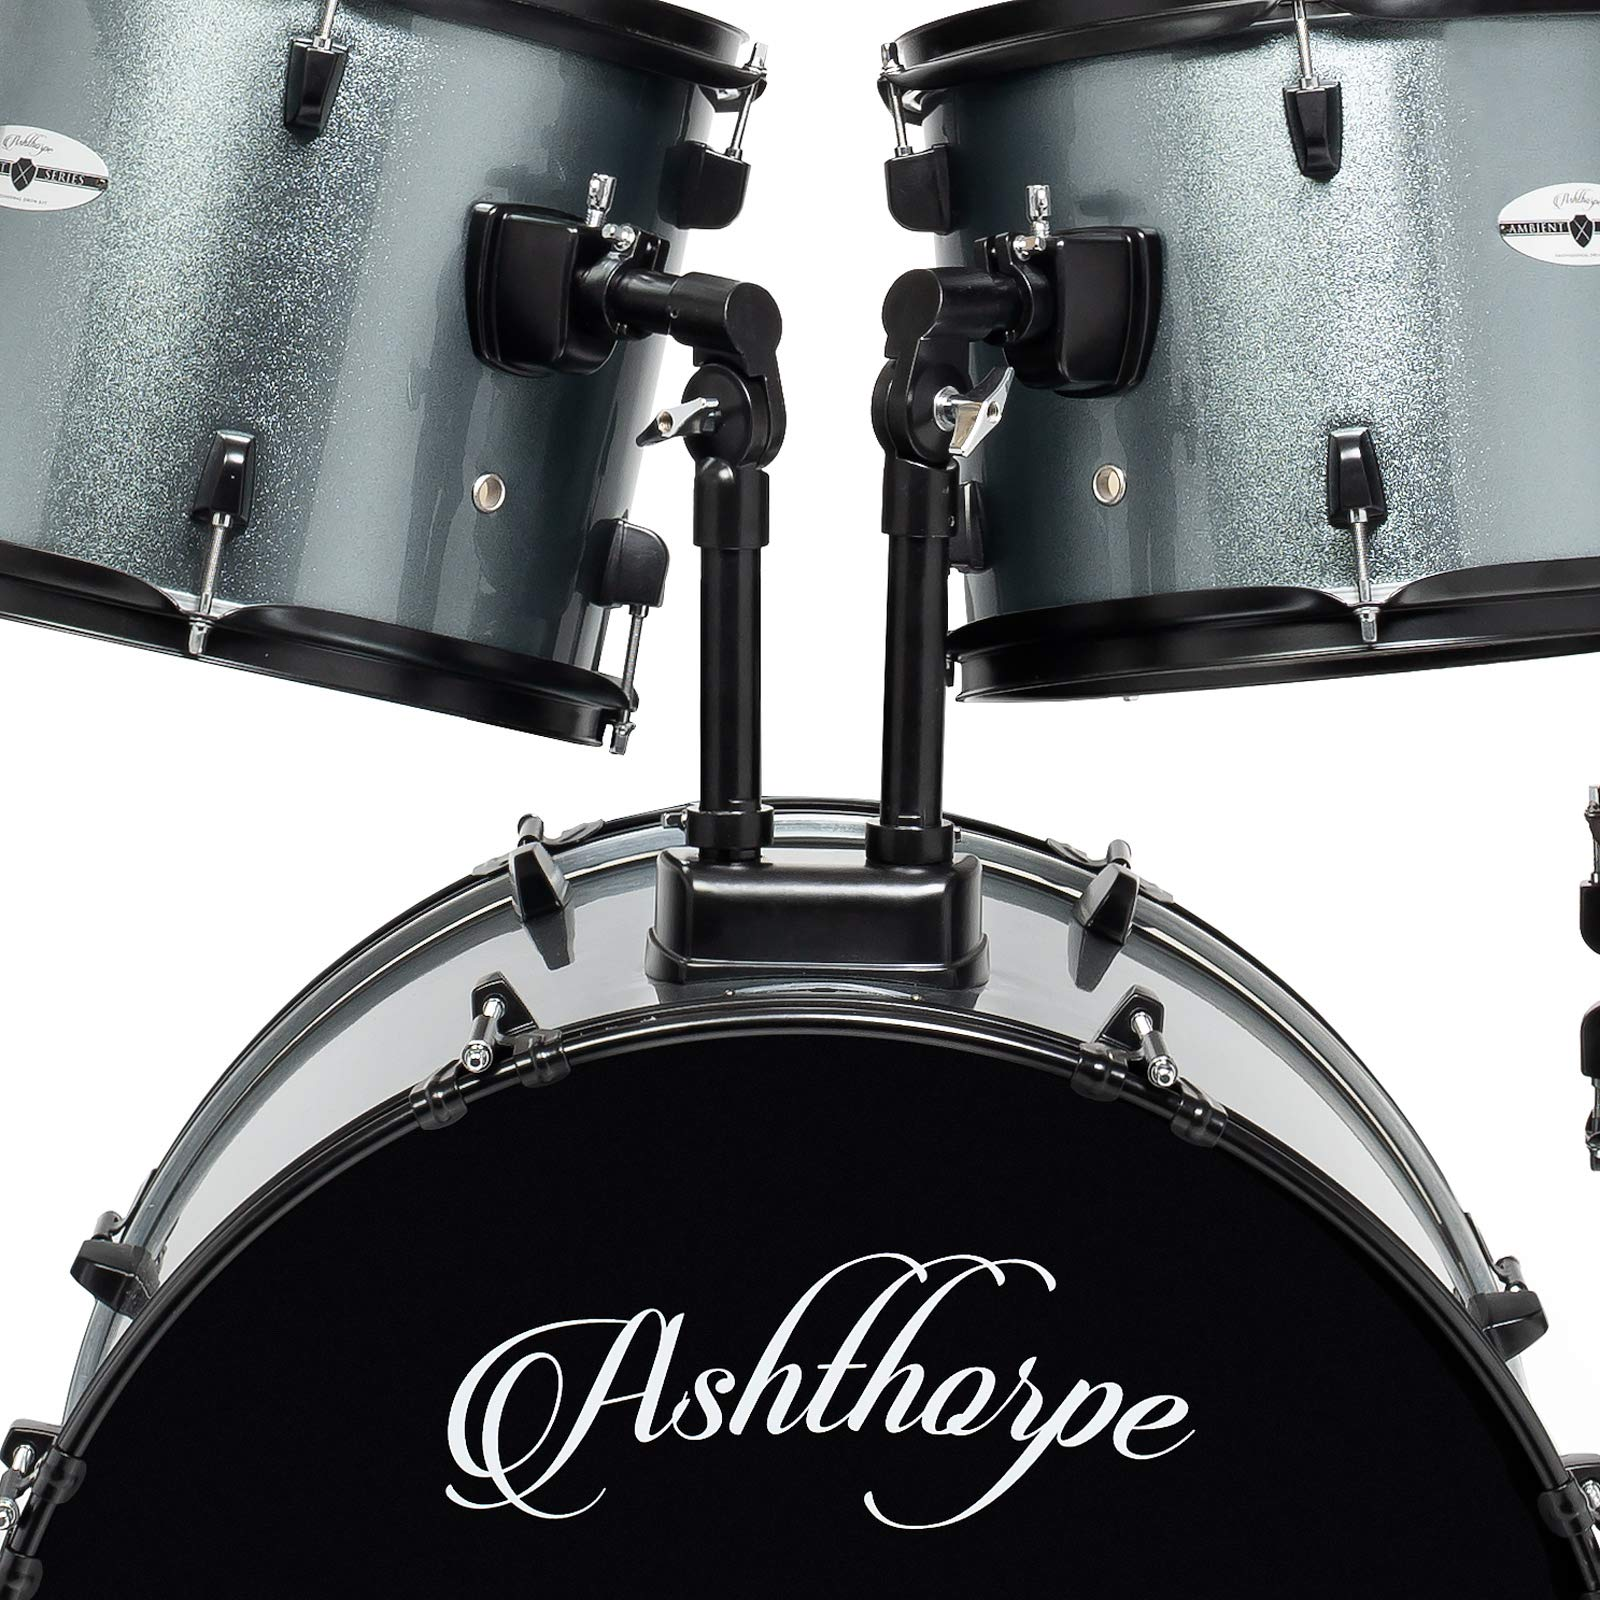 Ashthorpe 5-Piece Complete Full Size Adult Drum Set with Remo Batter Heads - Silver by Ashthorpe (Image #4)